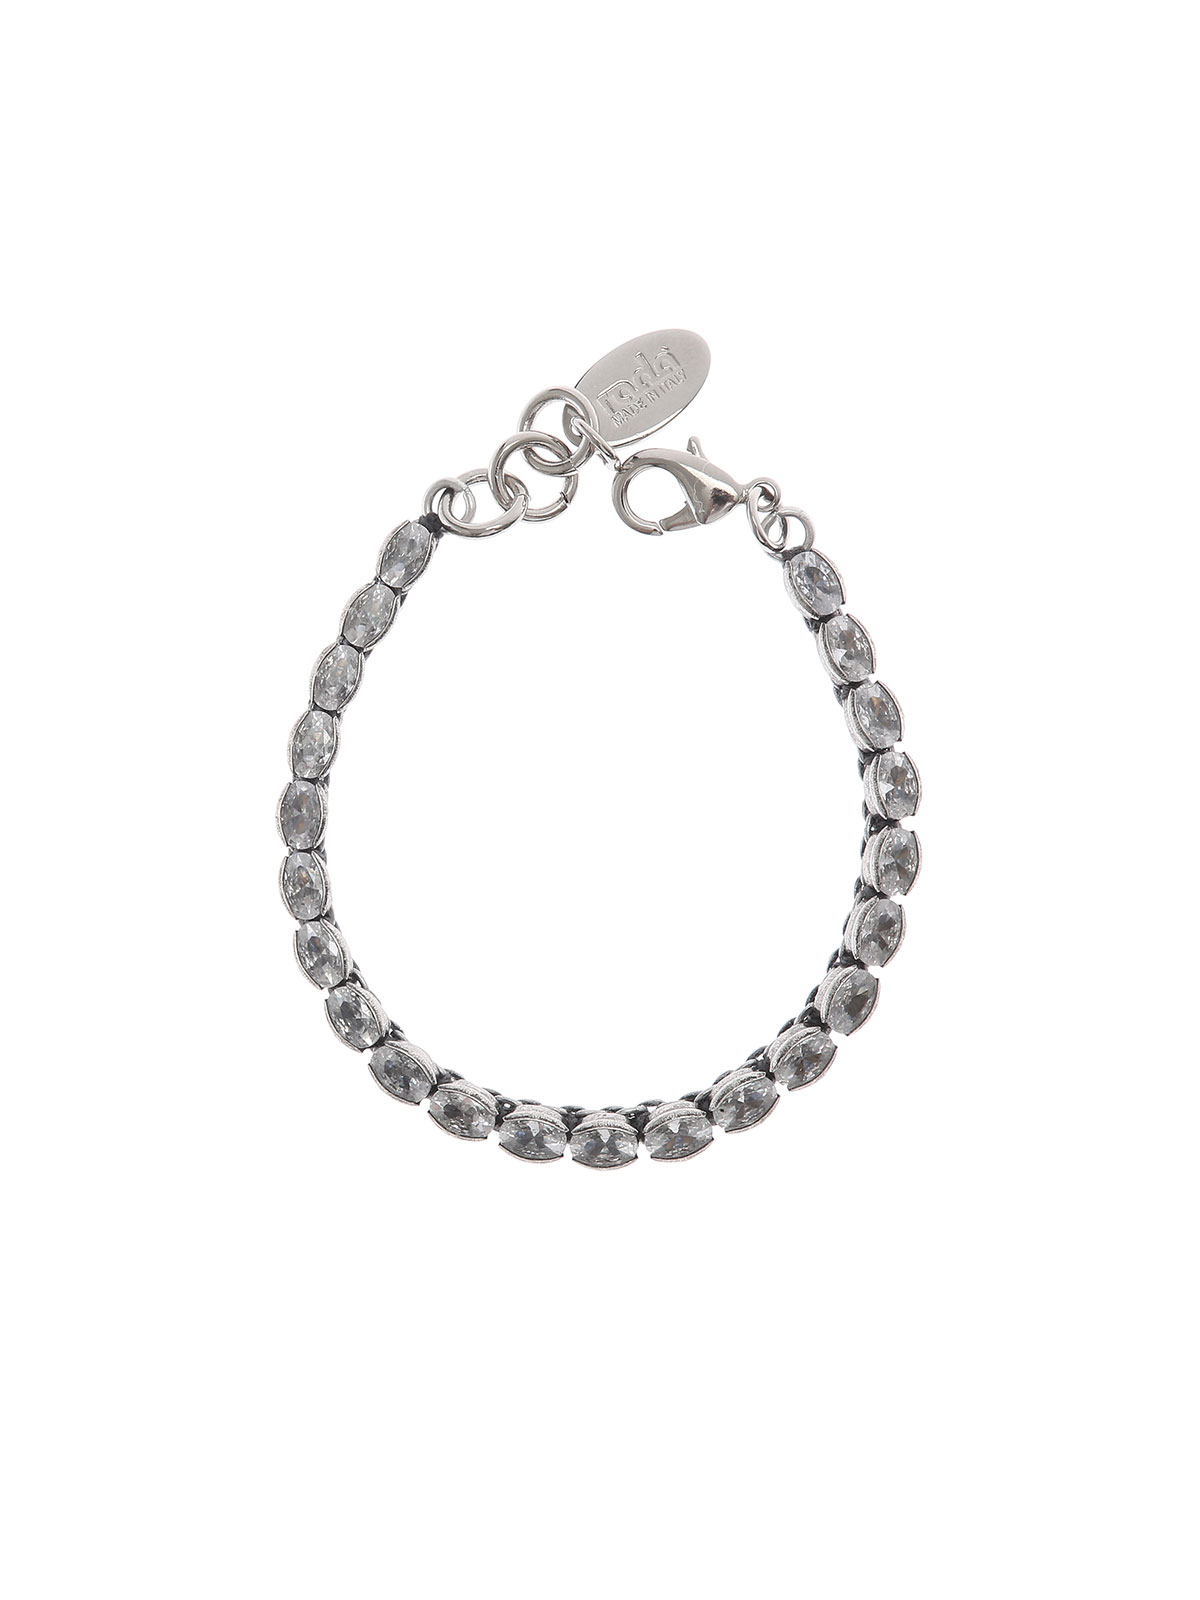 Bracelet with oval crystal stones